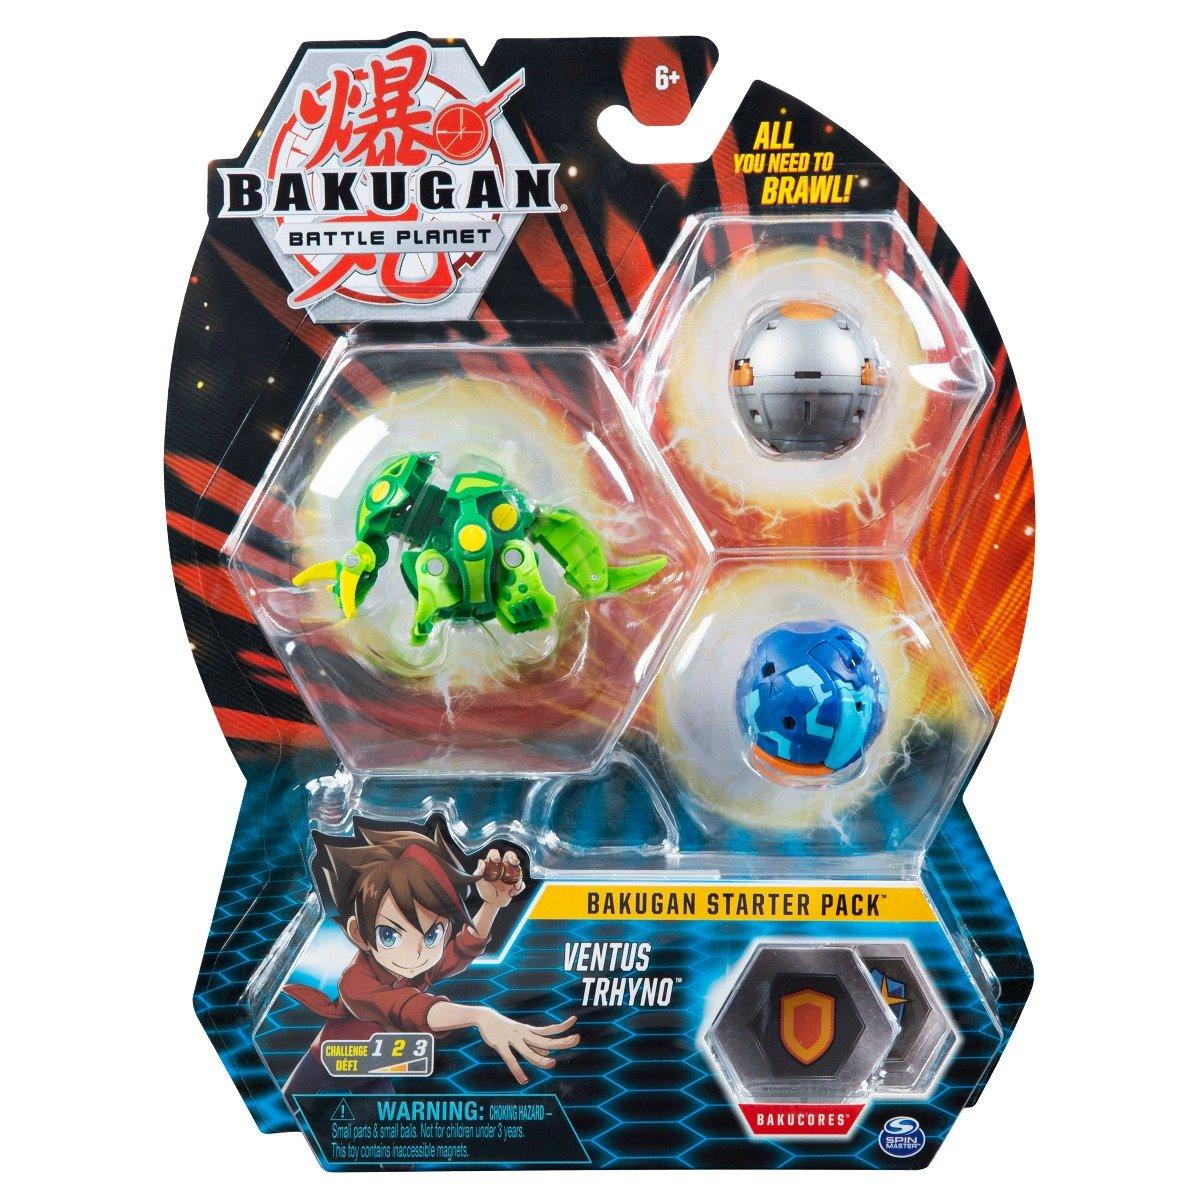 Set Bakugan Battle Planet Starter Pack, Ventus Trhyno, 20119861